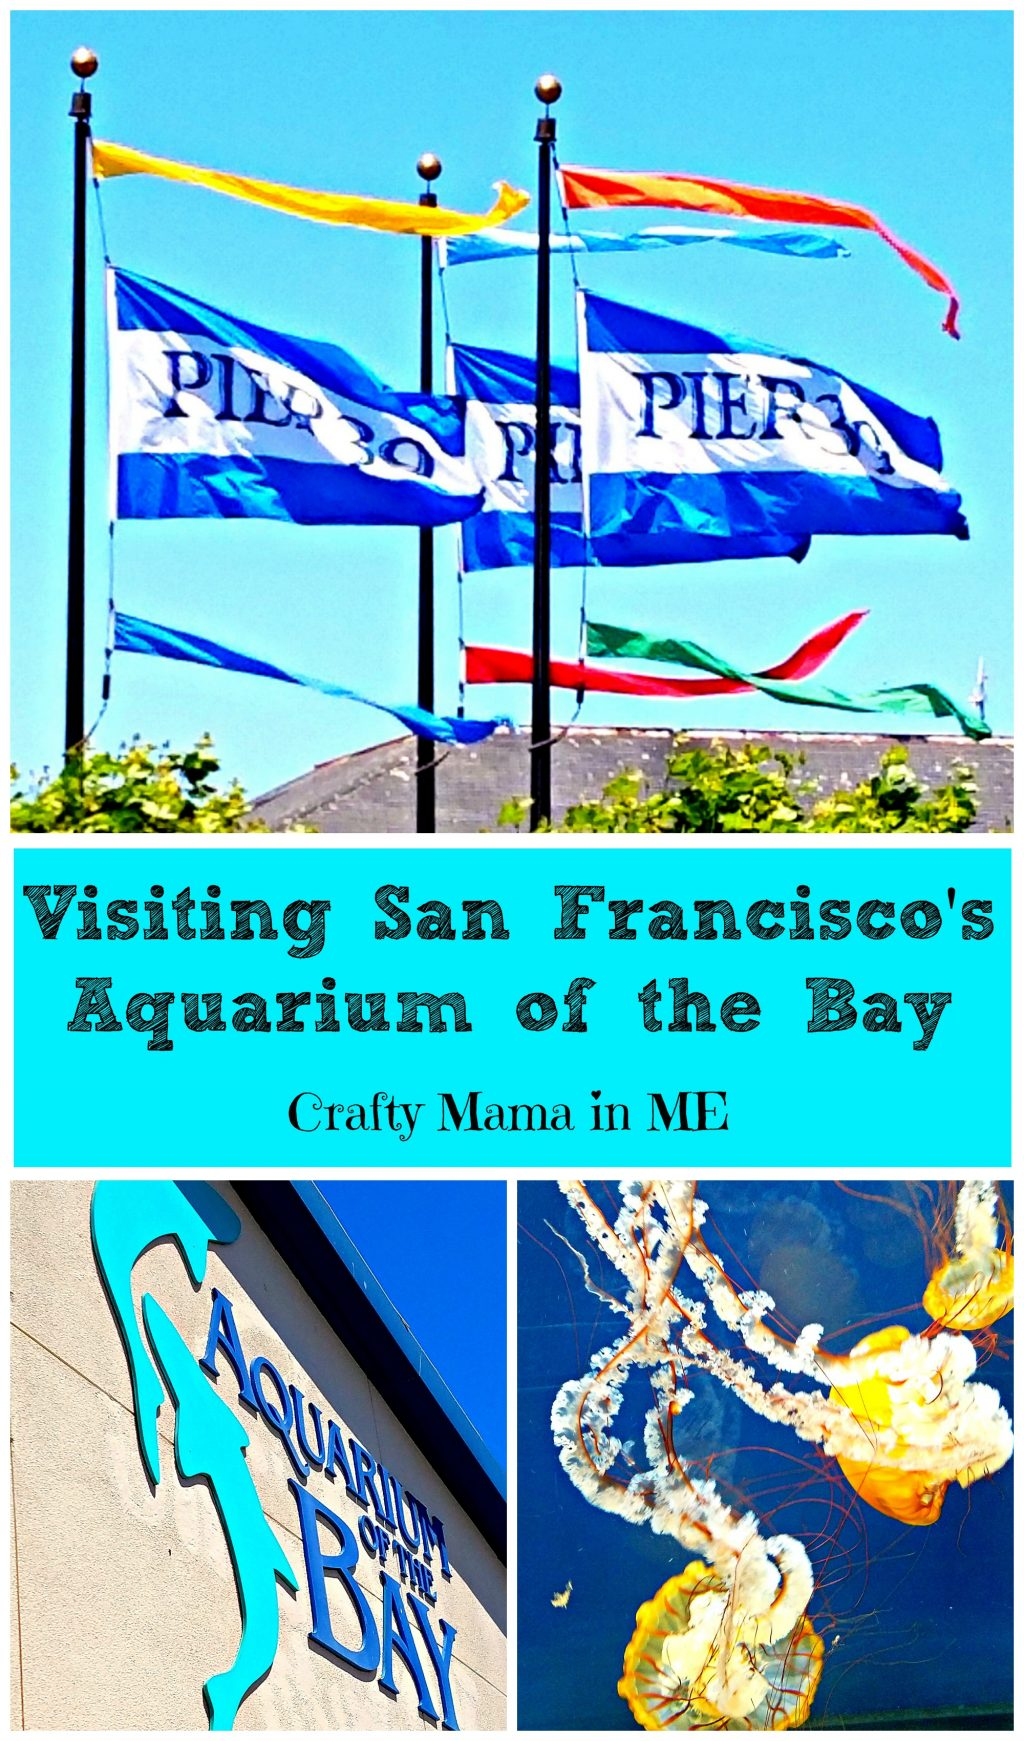 Visiting San Francisco's Aquarium of the Bay